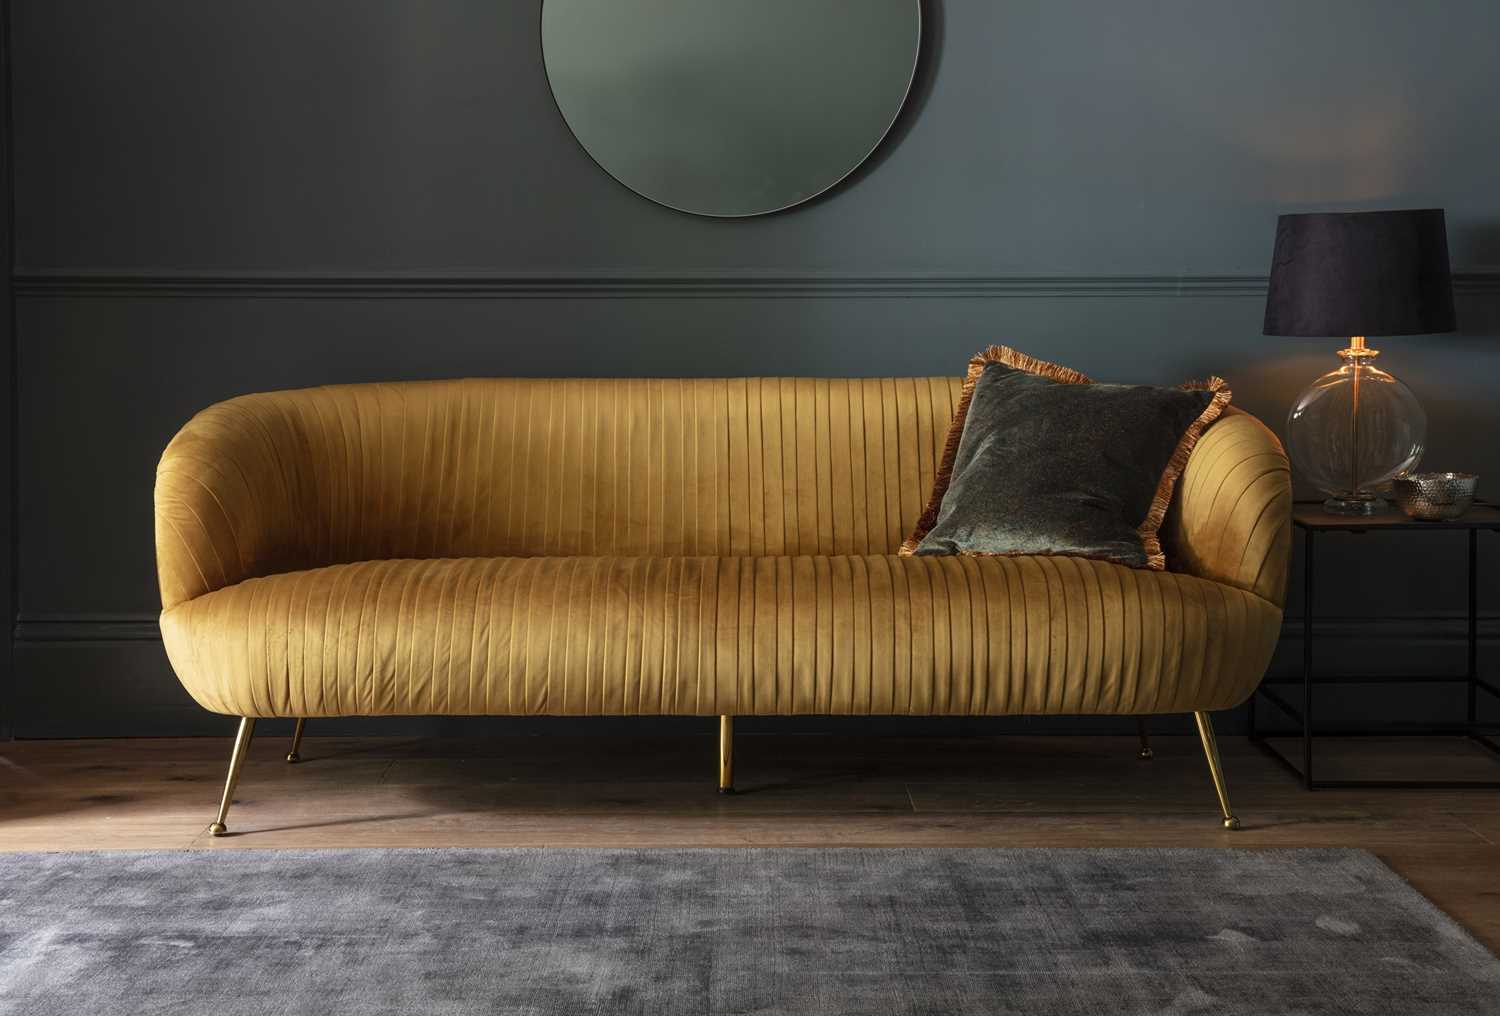 Direct Furniture Frank Hudson Gallery Valenza 3-Seater Sofa, Gold Velvet Fabric Whether you live